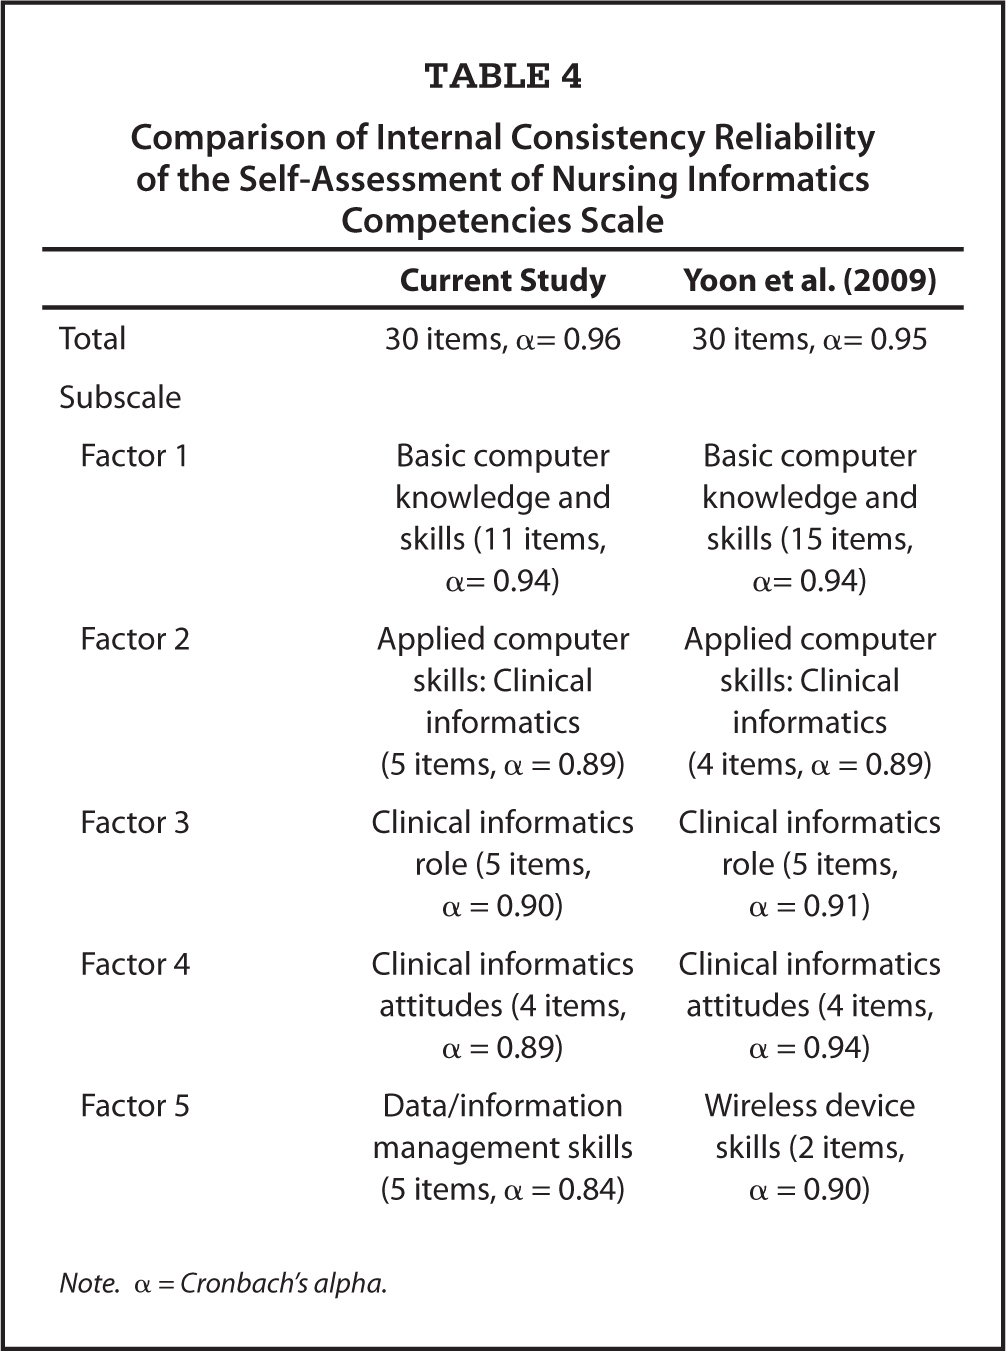 Comparison of Internal Consistency Reliability of the Self-Assessment of Nursing Informatics Competencies Scale